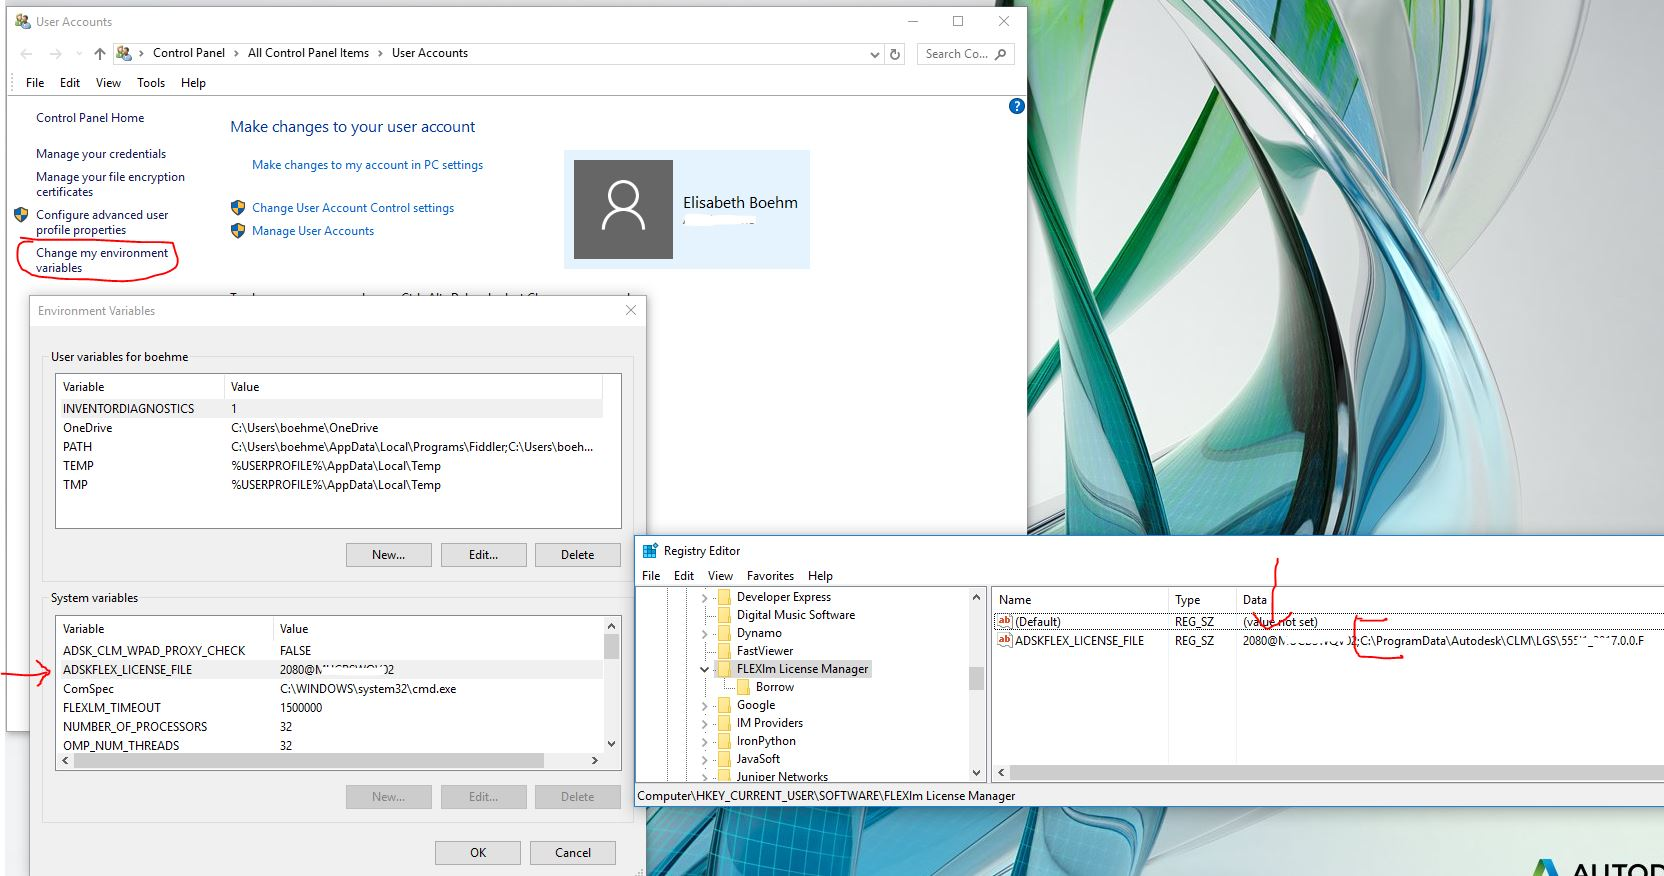 Autodesk Vault client need long time for logging in dialog | Vault